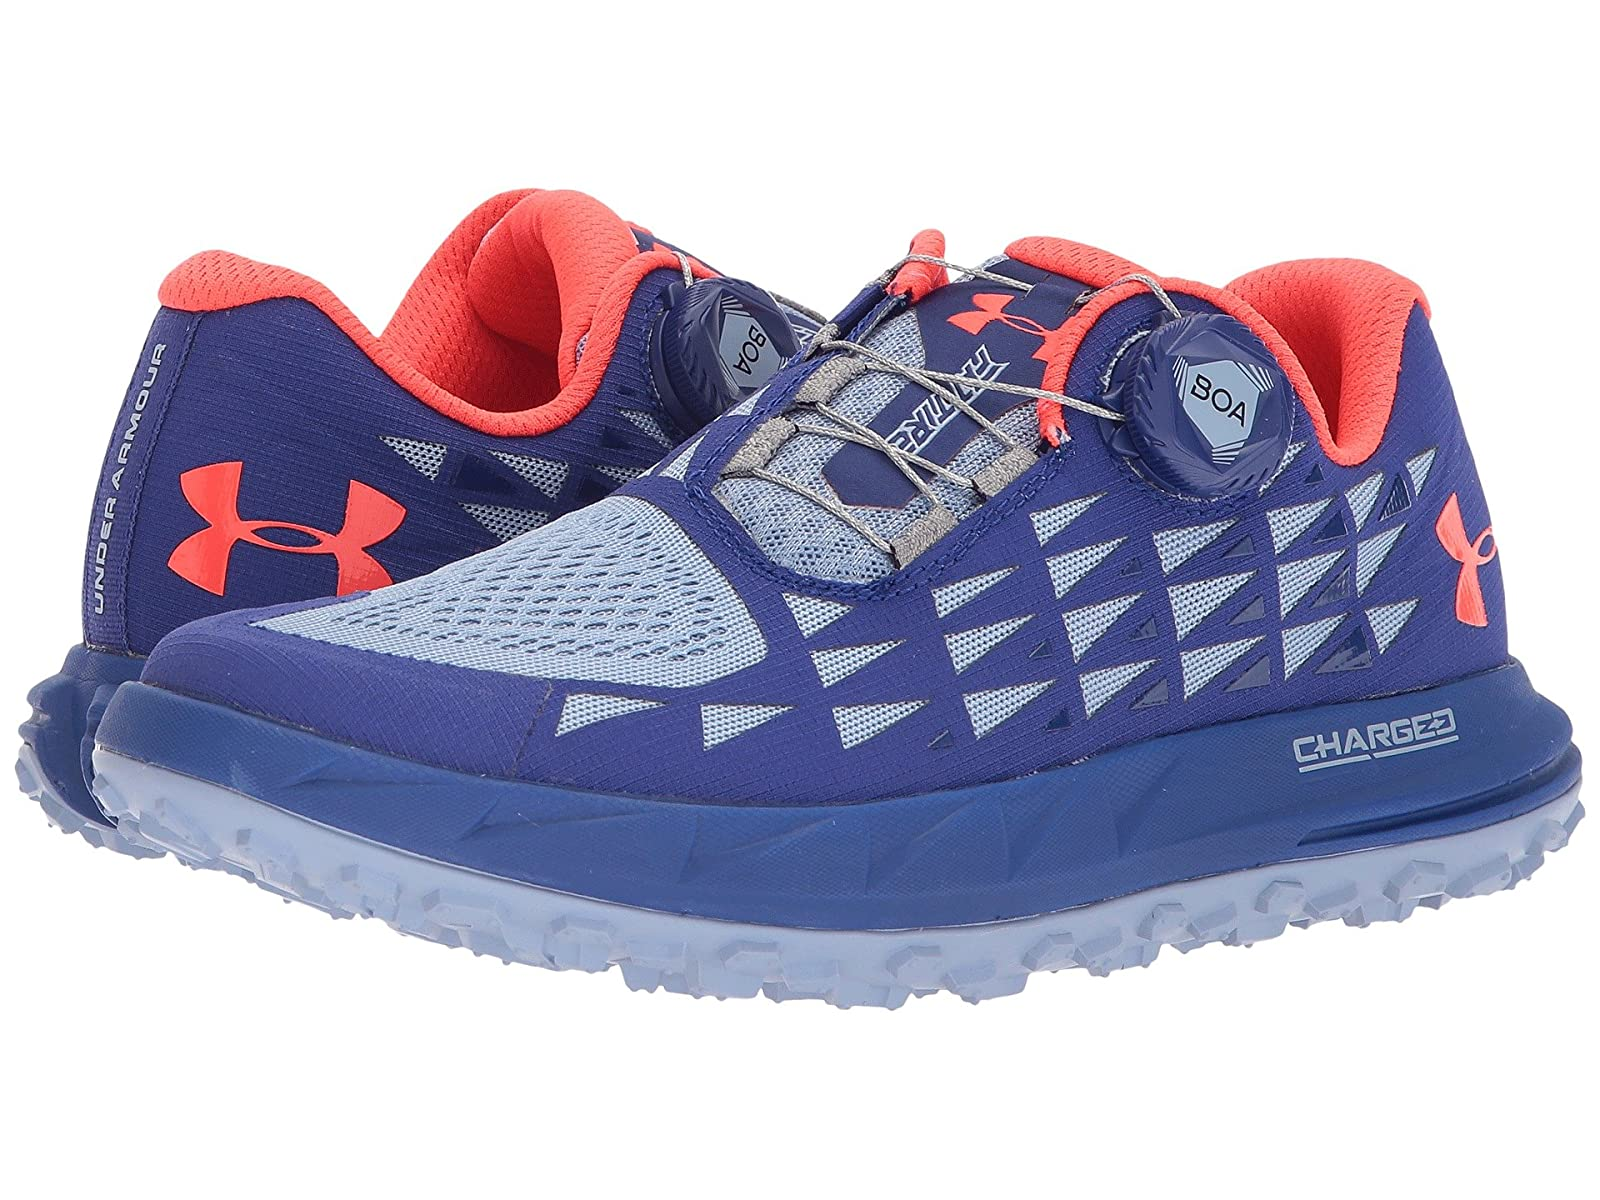 Under Armour UA Fat Tire 3Atmospheric grades have affordable shoes